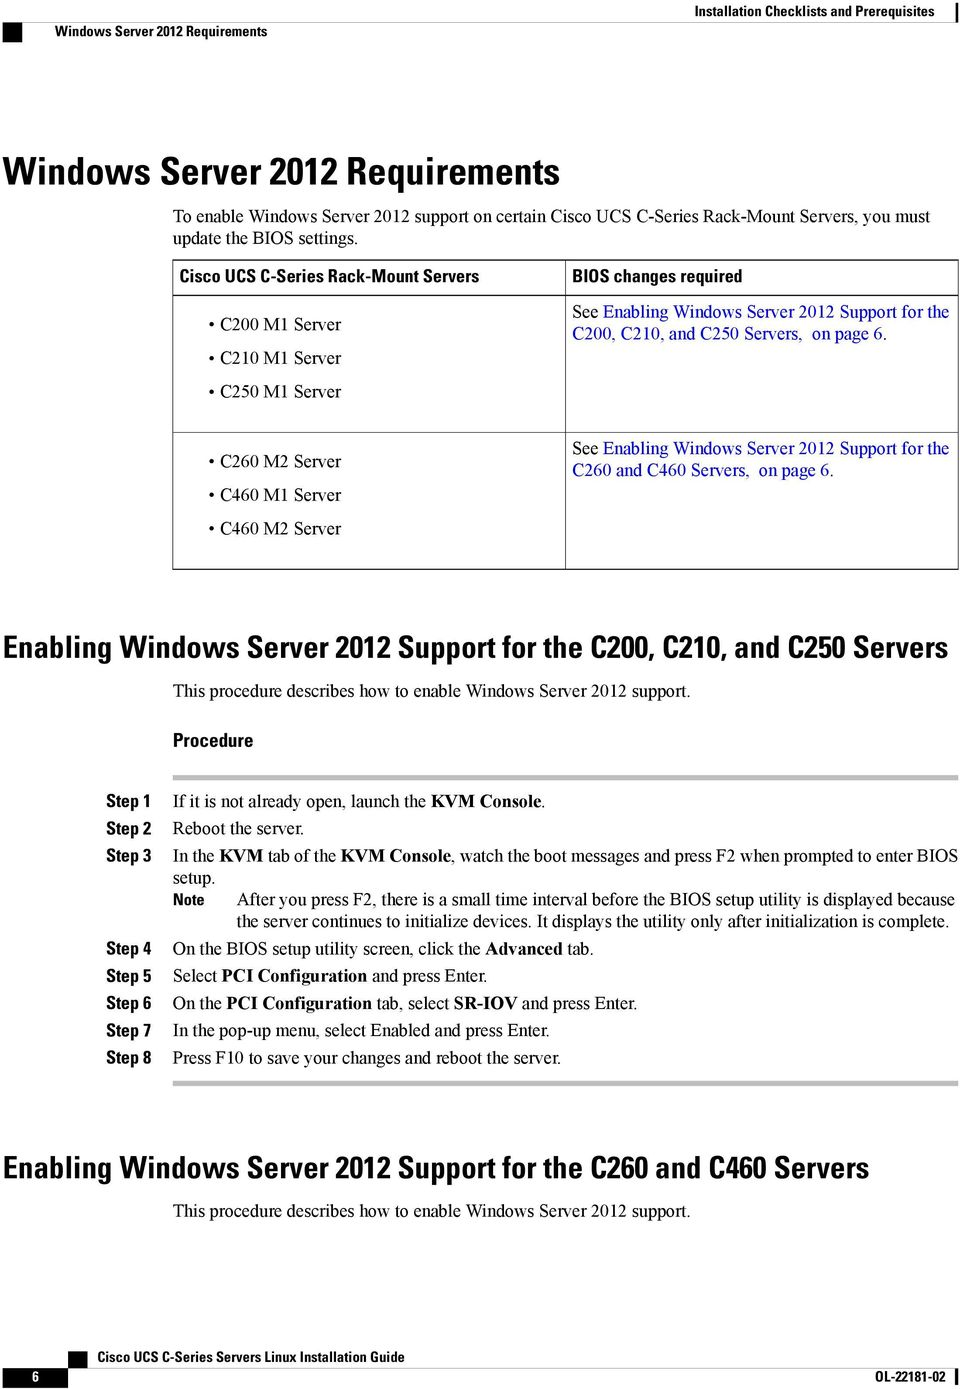 Cisco UCS C-Series Rack-Mount Servers C200 M1 Server C210 M1 Server C250 M1 Server BIOS changes required See Enabling Windows Server 2012 Support for the C200, C210, and C250 Servers, on page 6.